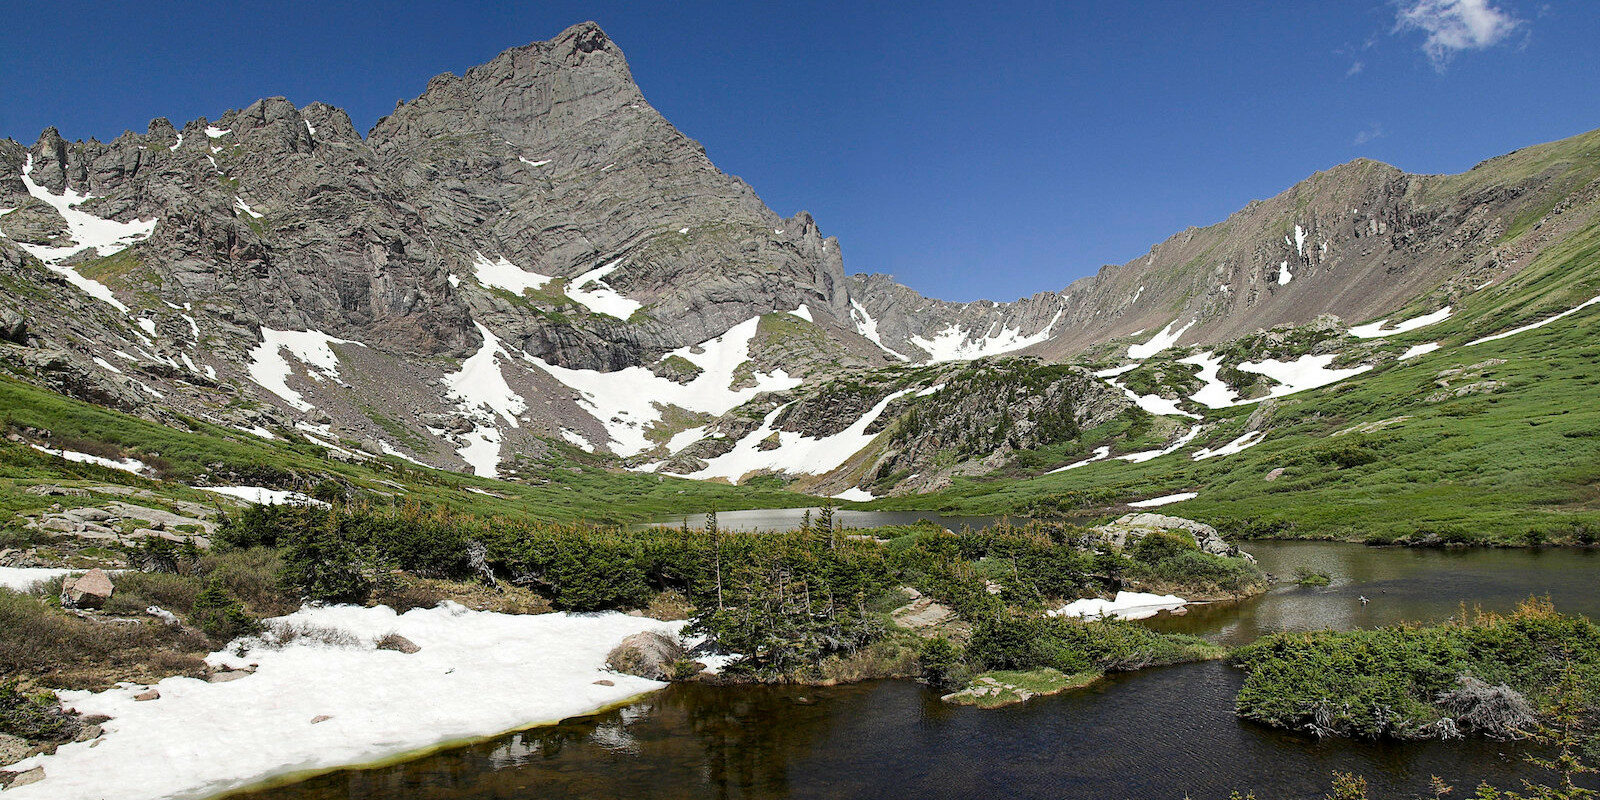 Image of the South Colony Lakes and Cresone Needle in Westcliffe, Colorado